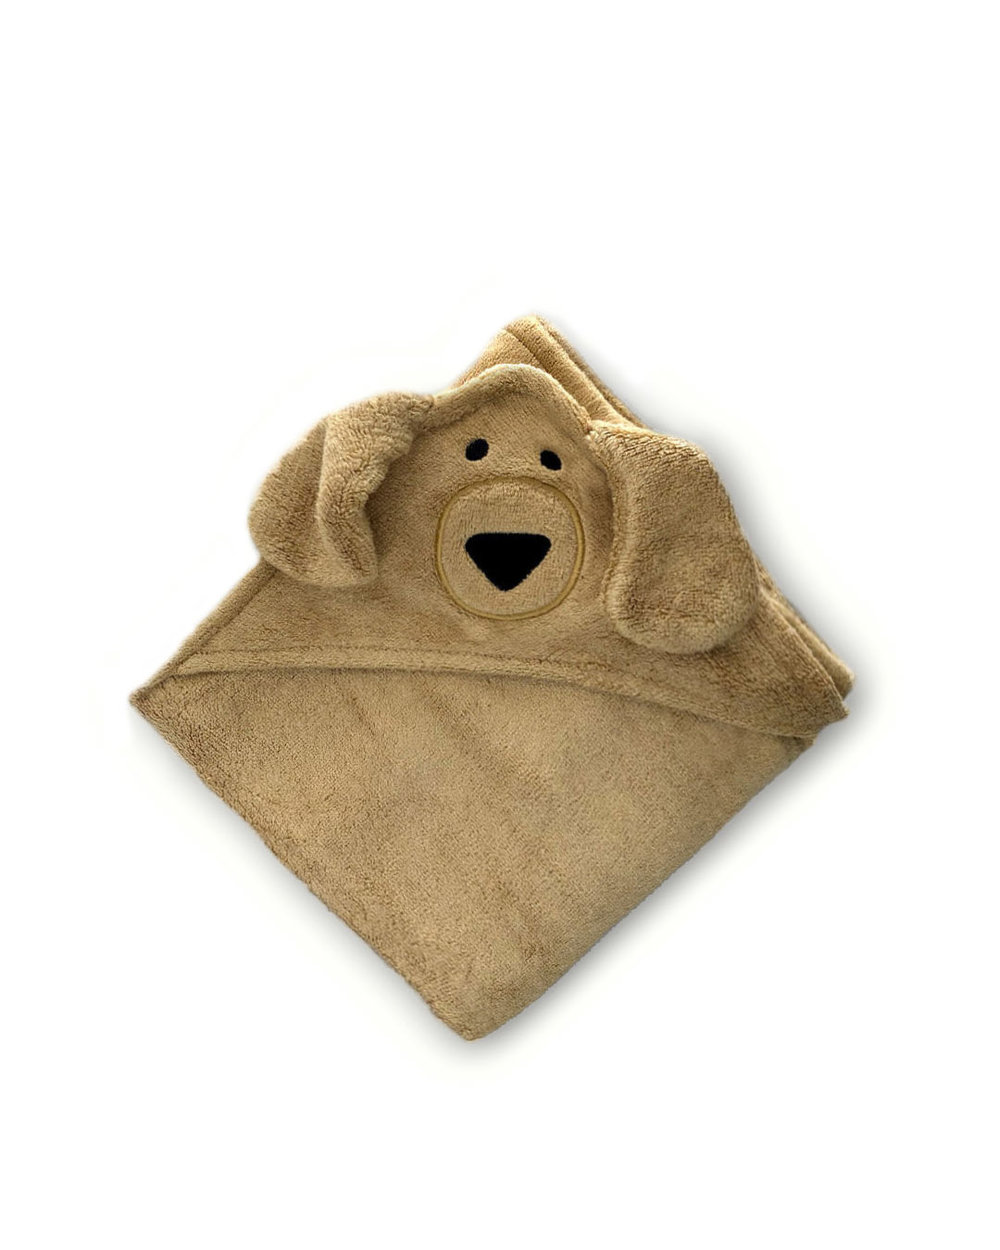 dog buena 1 towel.jpg